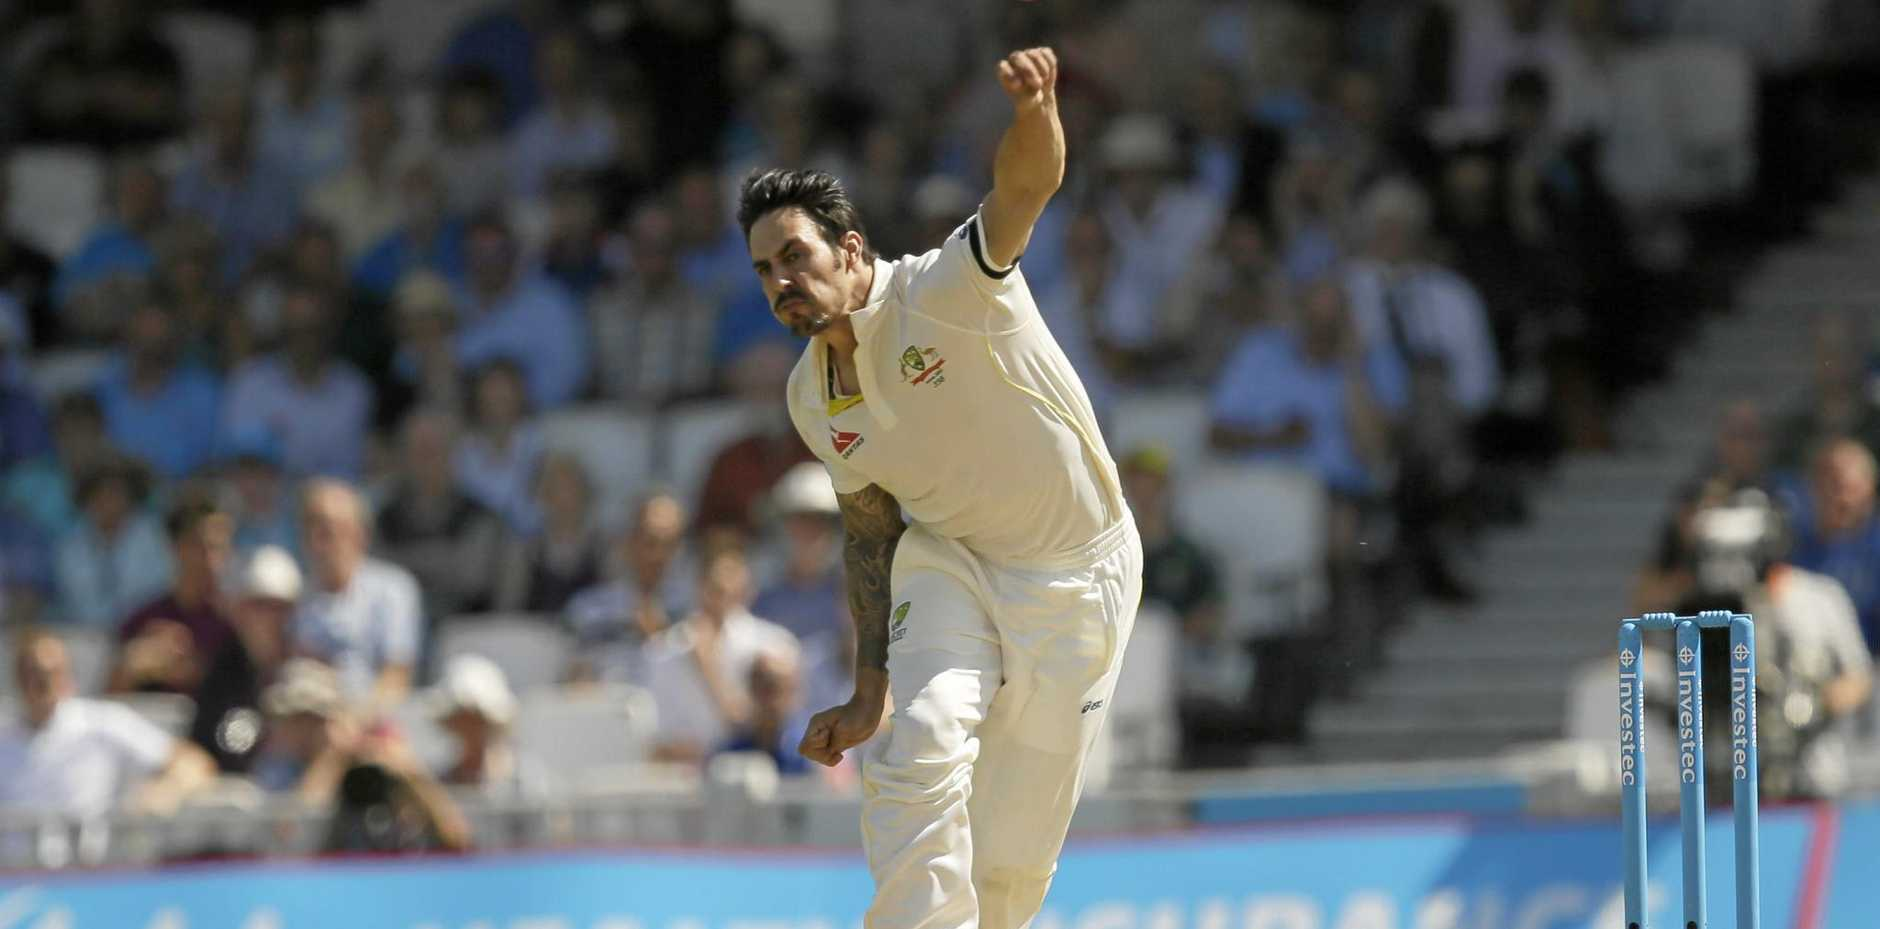 Australia's Mitchell Johnson bowls to England's Ian Bell on the third day of the fifth Ashes Test at The Oval in 2015.